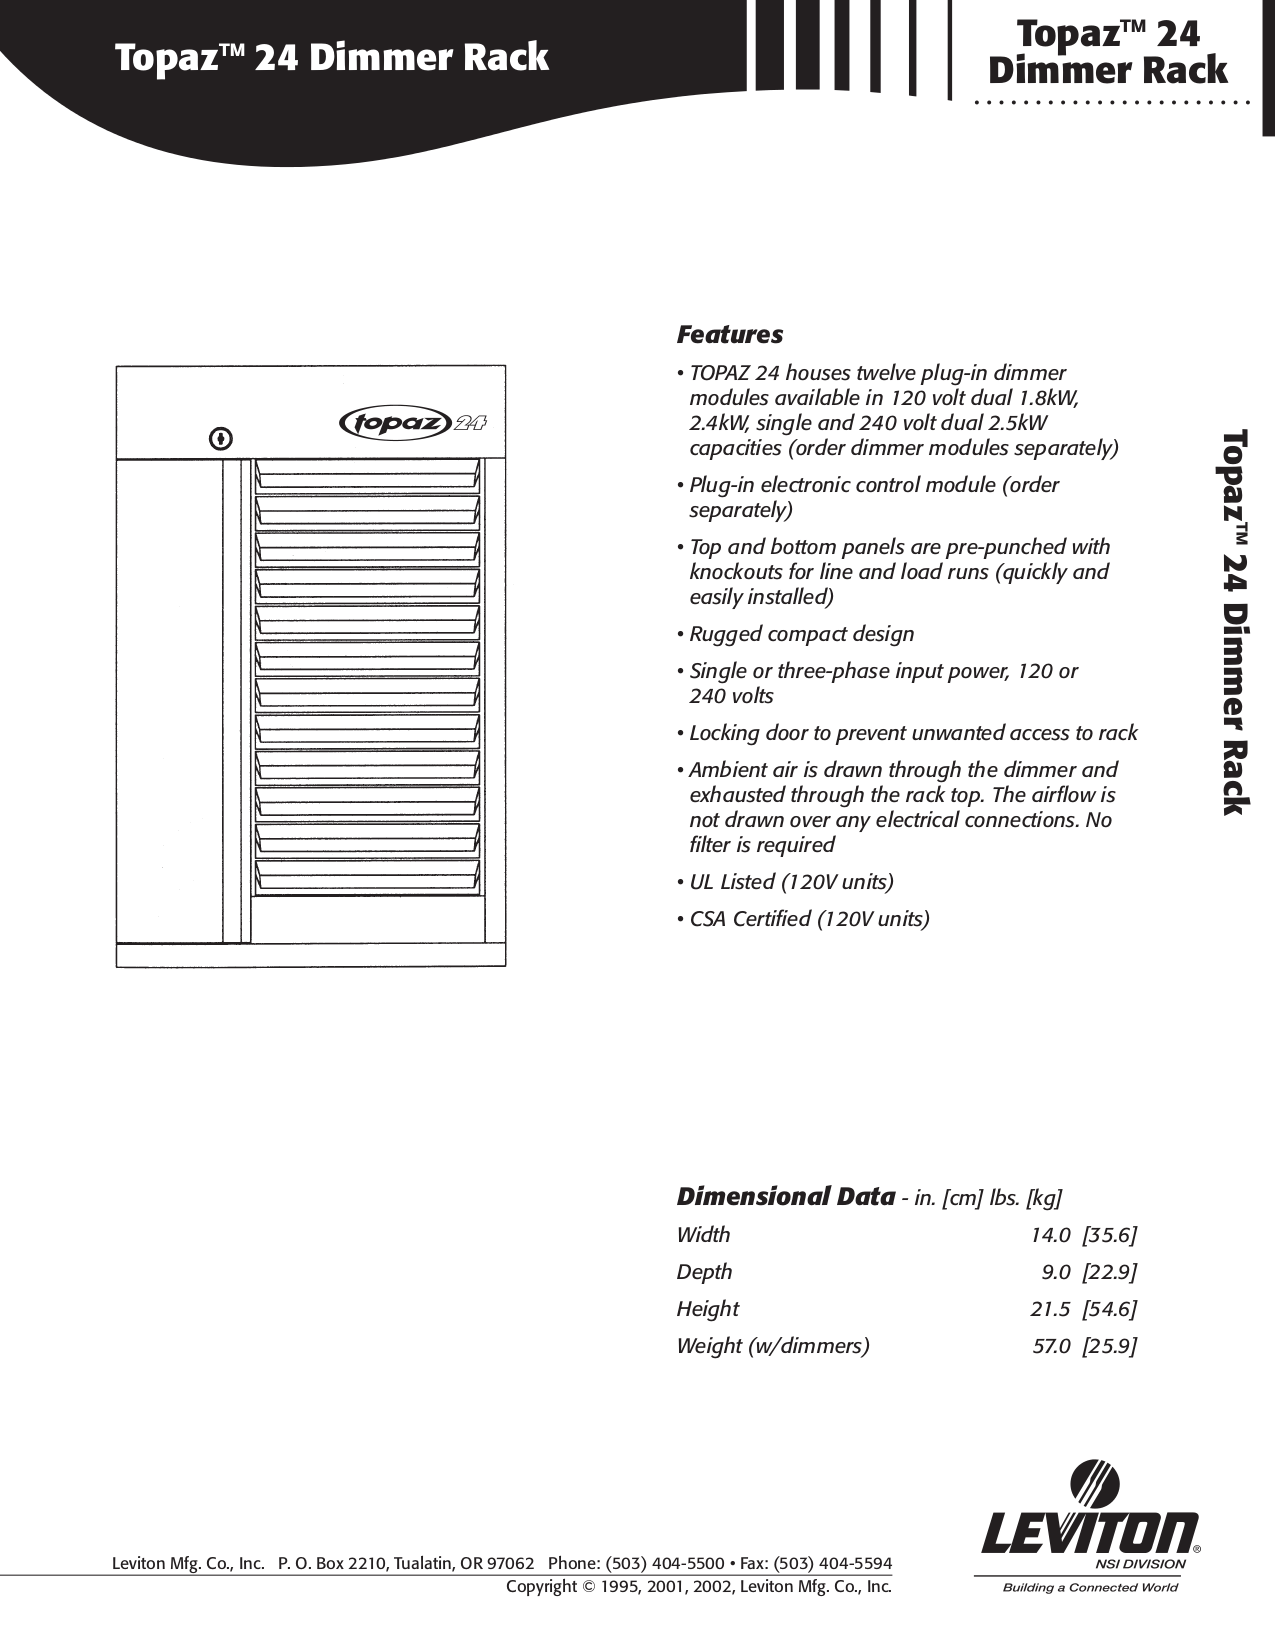 Delighted Leviton Mfg Co Inc Images - Wiring Diagram Ideas ...